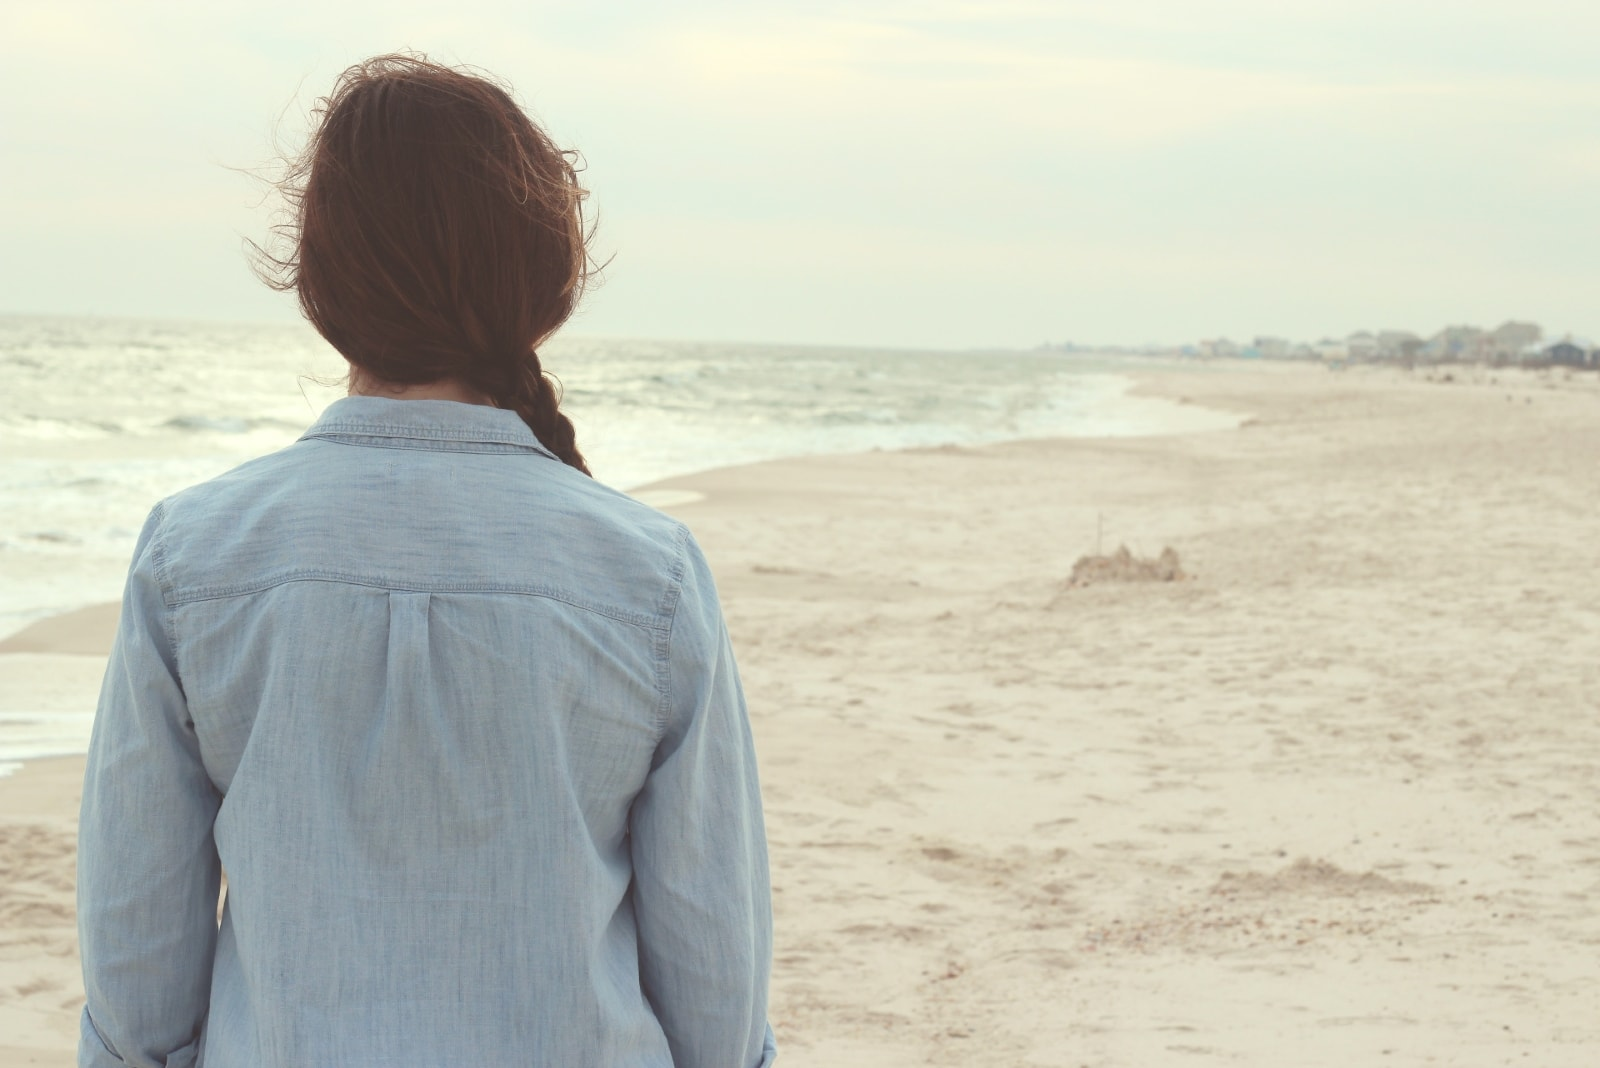 woman standing on beach looking at sea